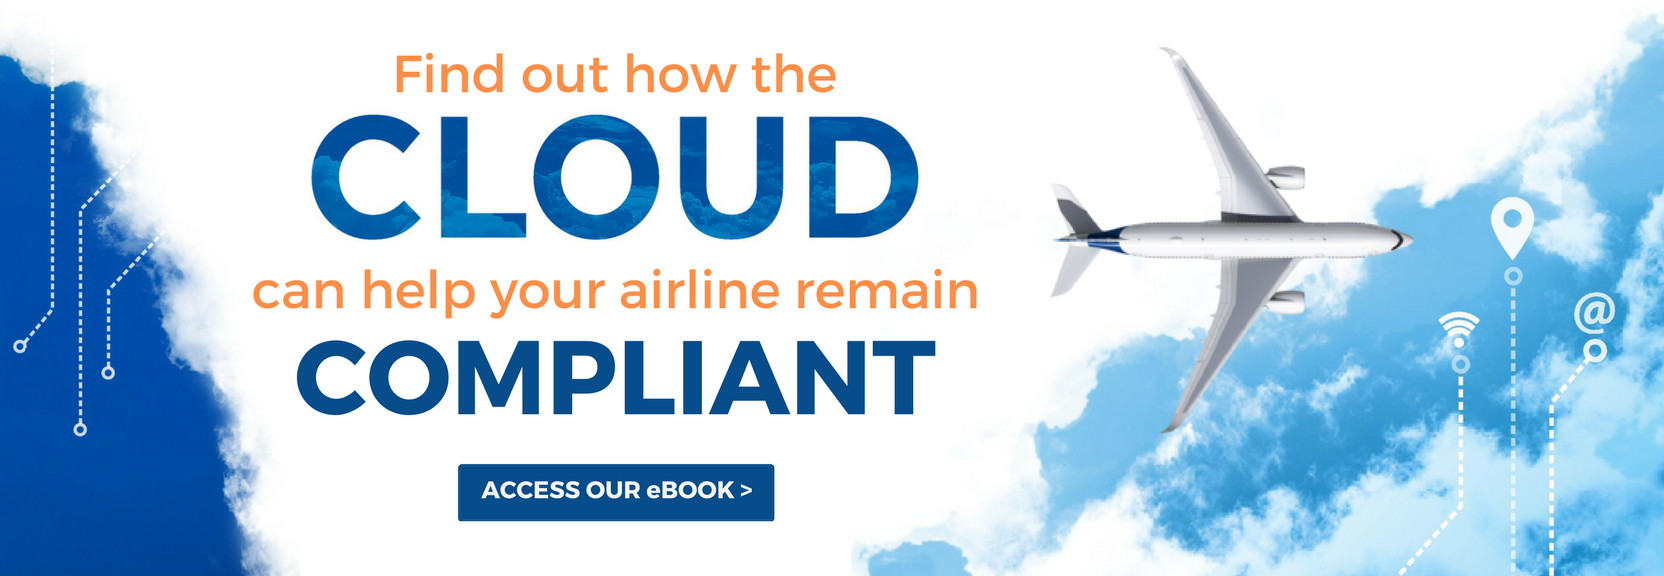 Download Vistair's eBook on how documents in the cloud can help your airline remain compliant